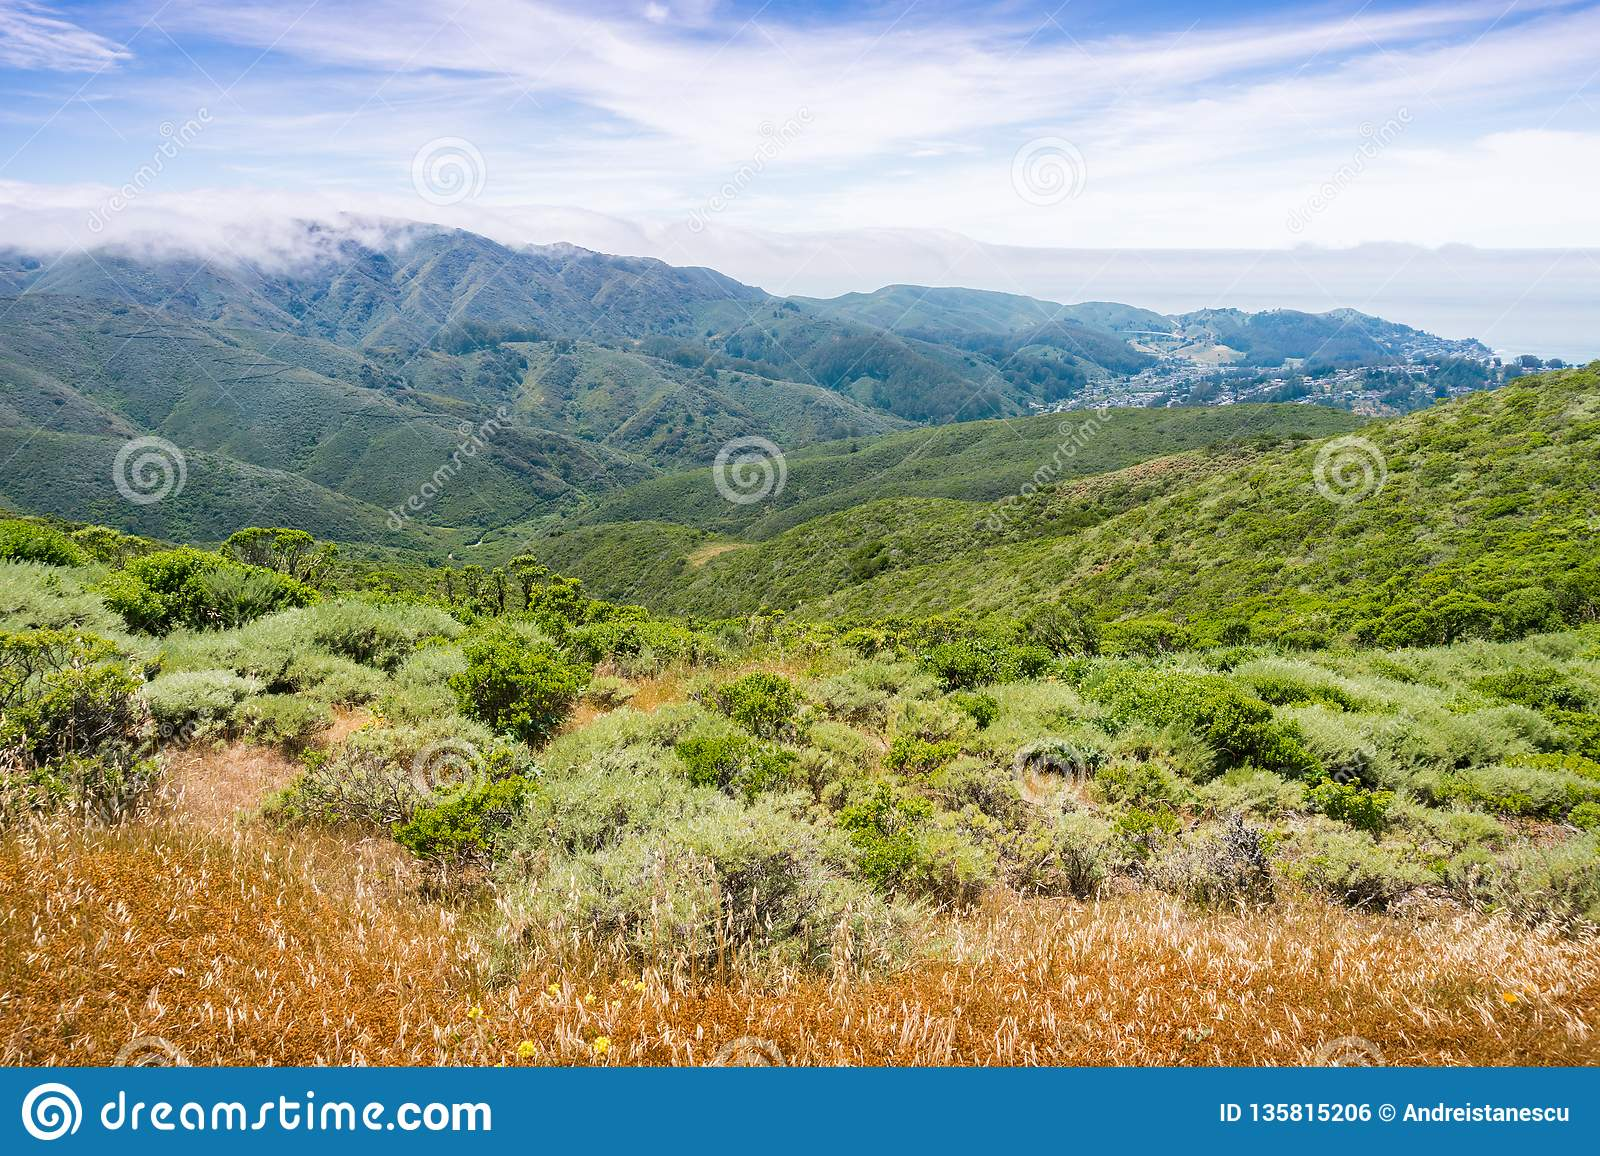 Fog covering the verdant hills and valleys of Montara mountain McNee Ranch State Park, California